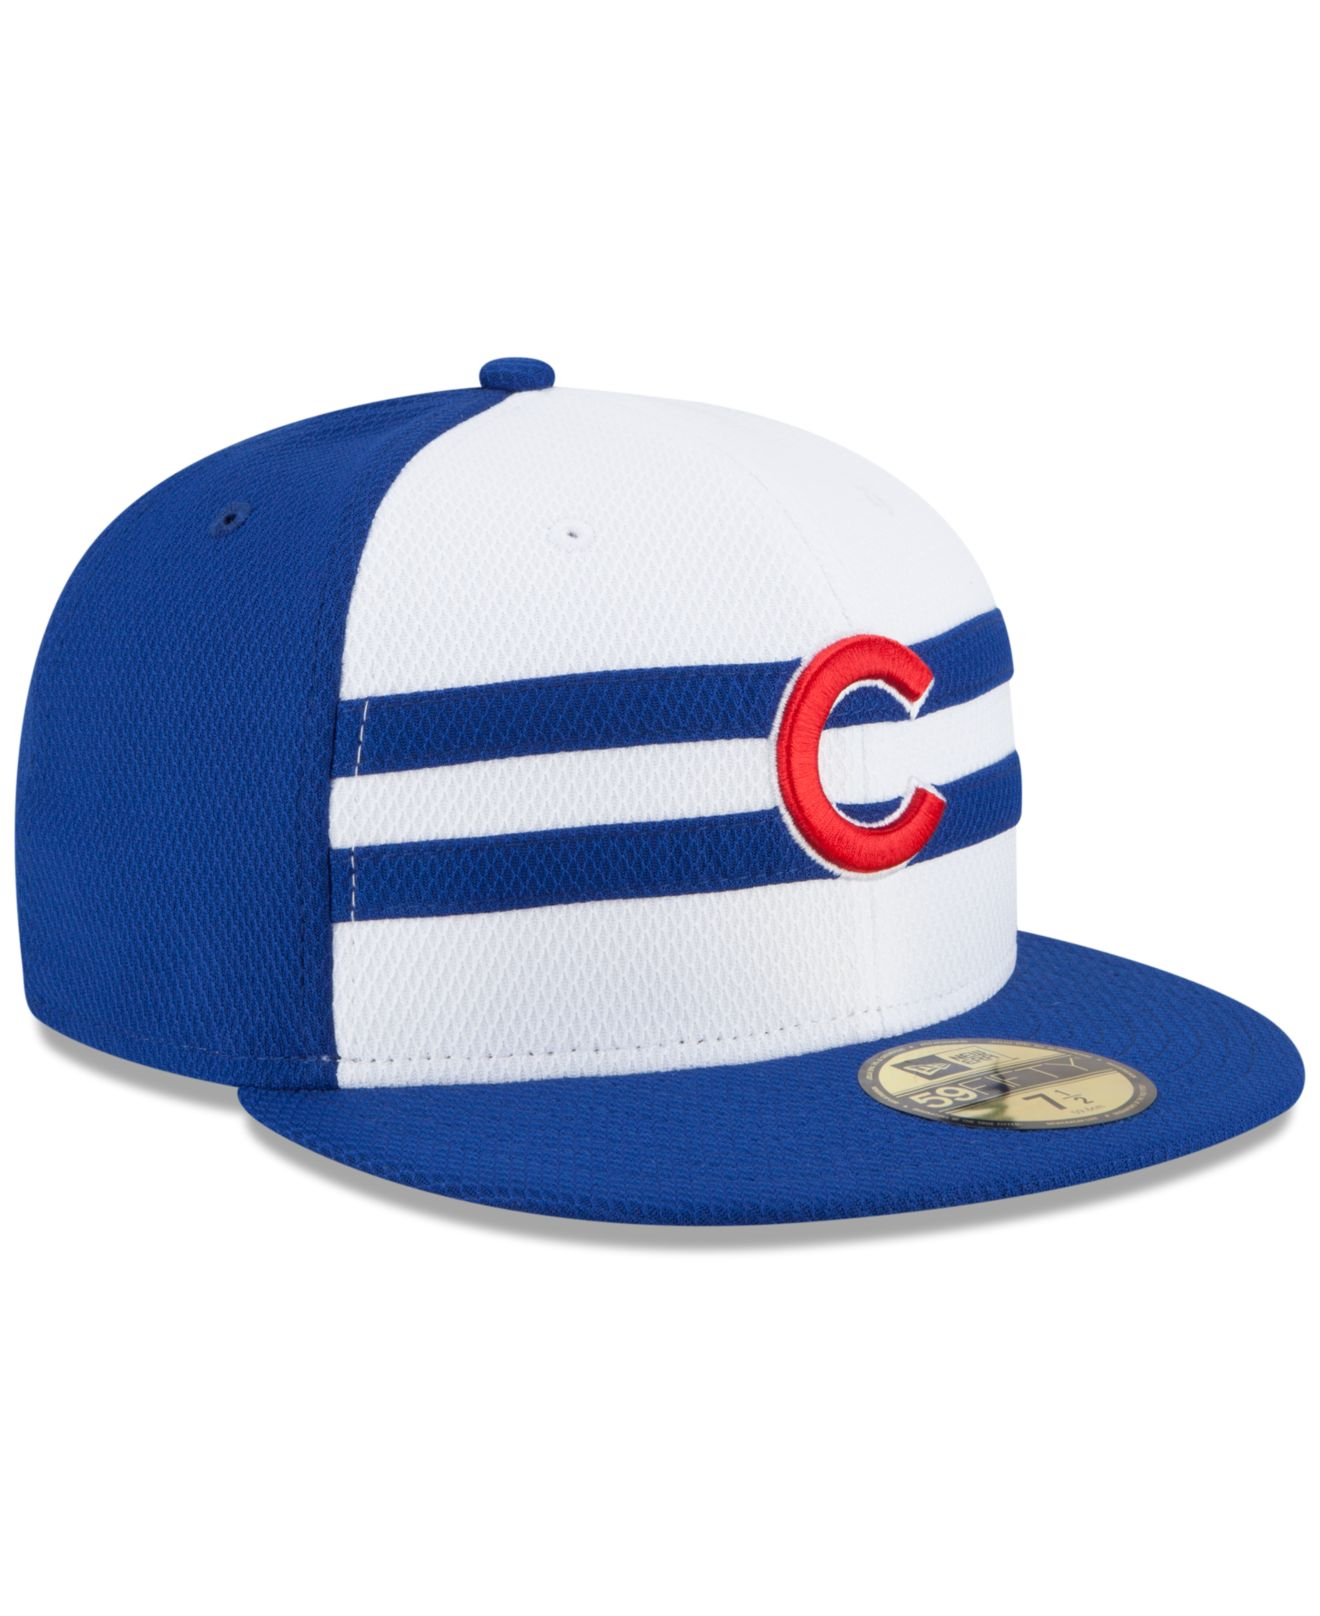 ecbb294cc59cac ... discount code for ktz chicago cubs 2015 all star game 59fifty cap in  blue for men